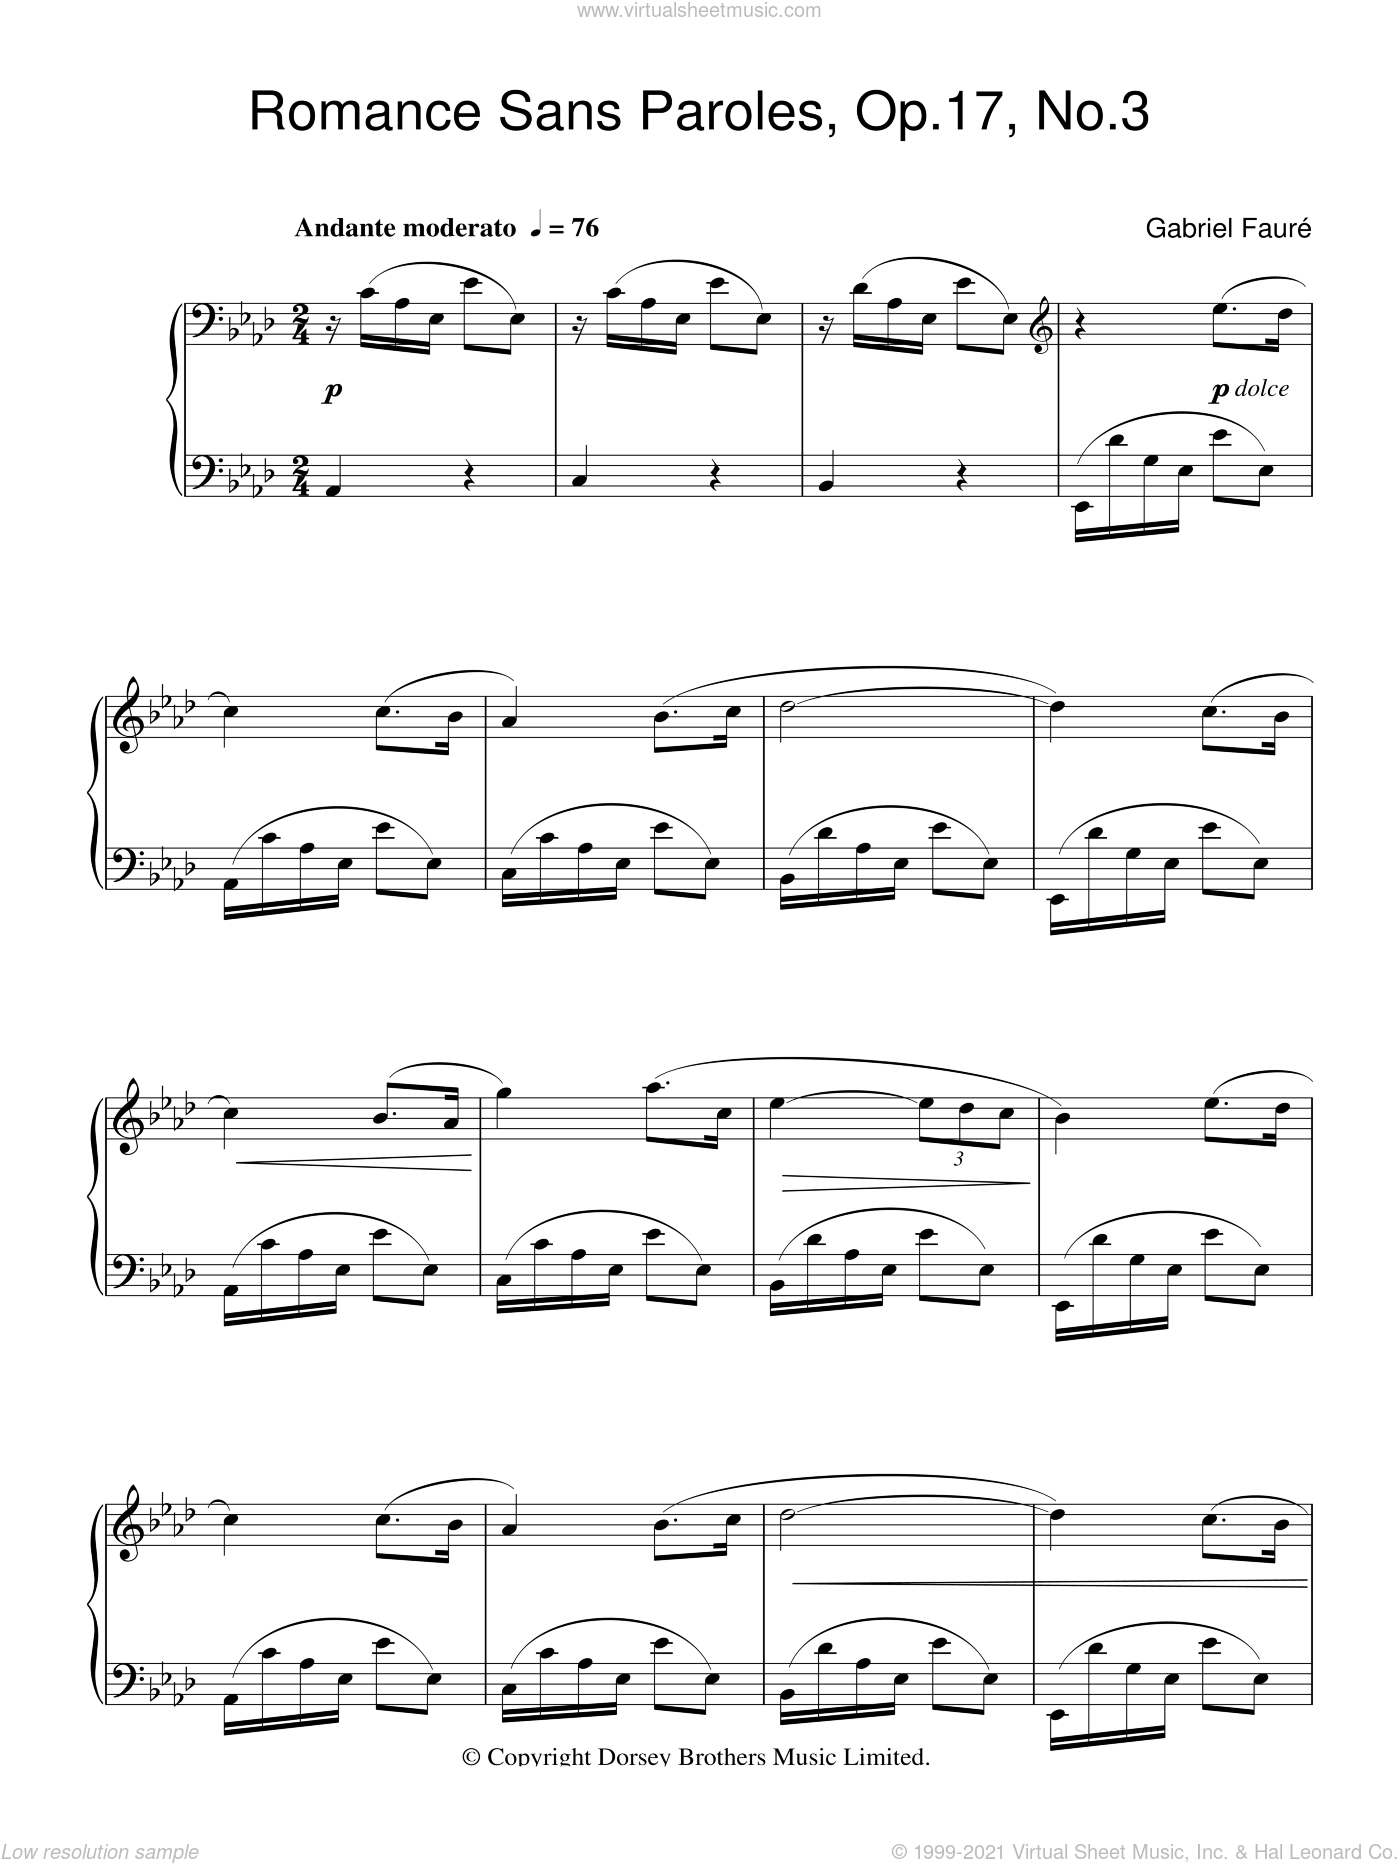 Romance Sans Paroles Op. 17, No. 3 sheet music for piano solo by Gabriel Faure, classical score, intermediate skill level